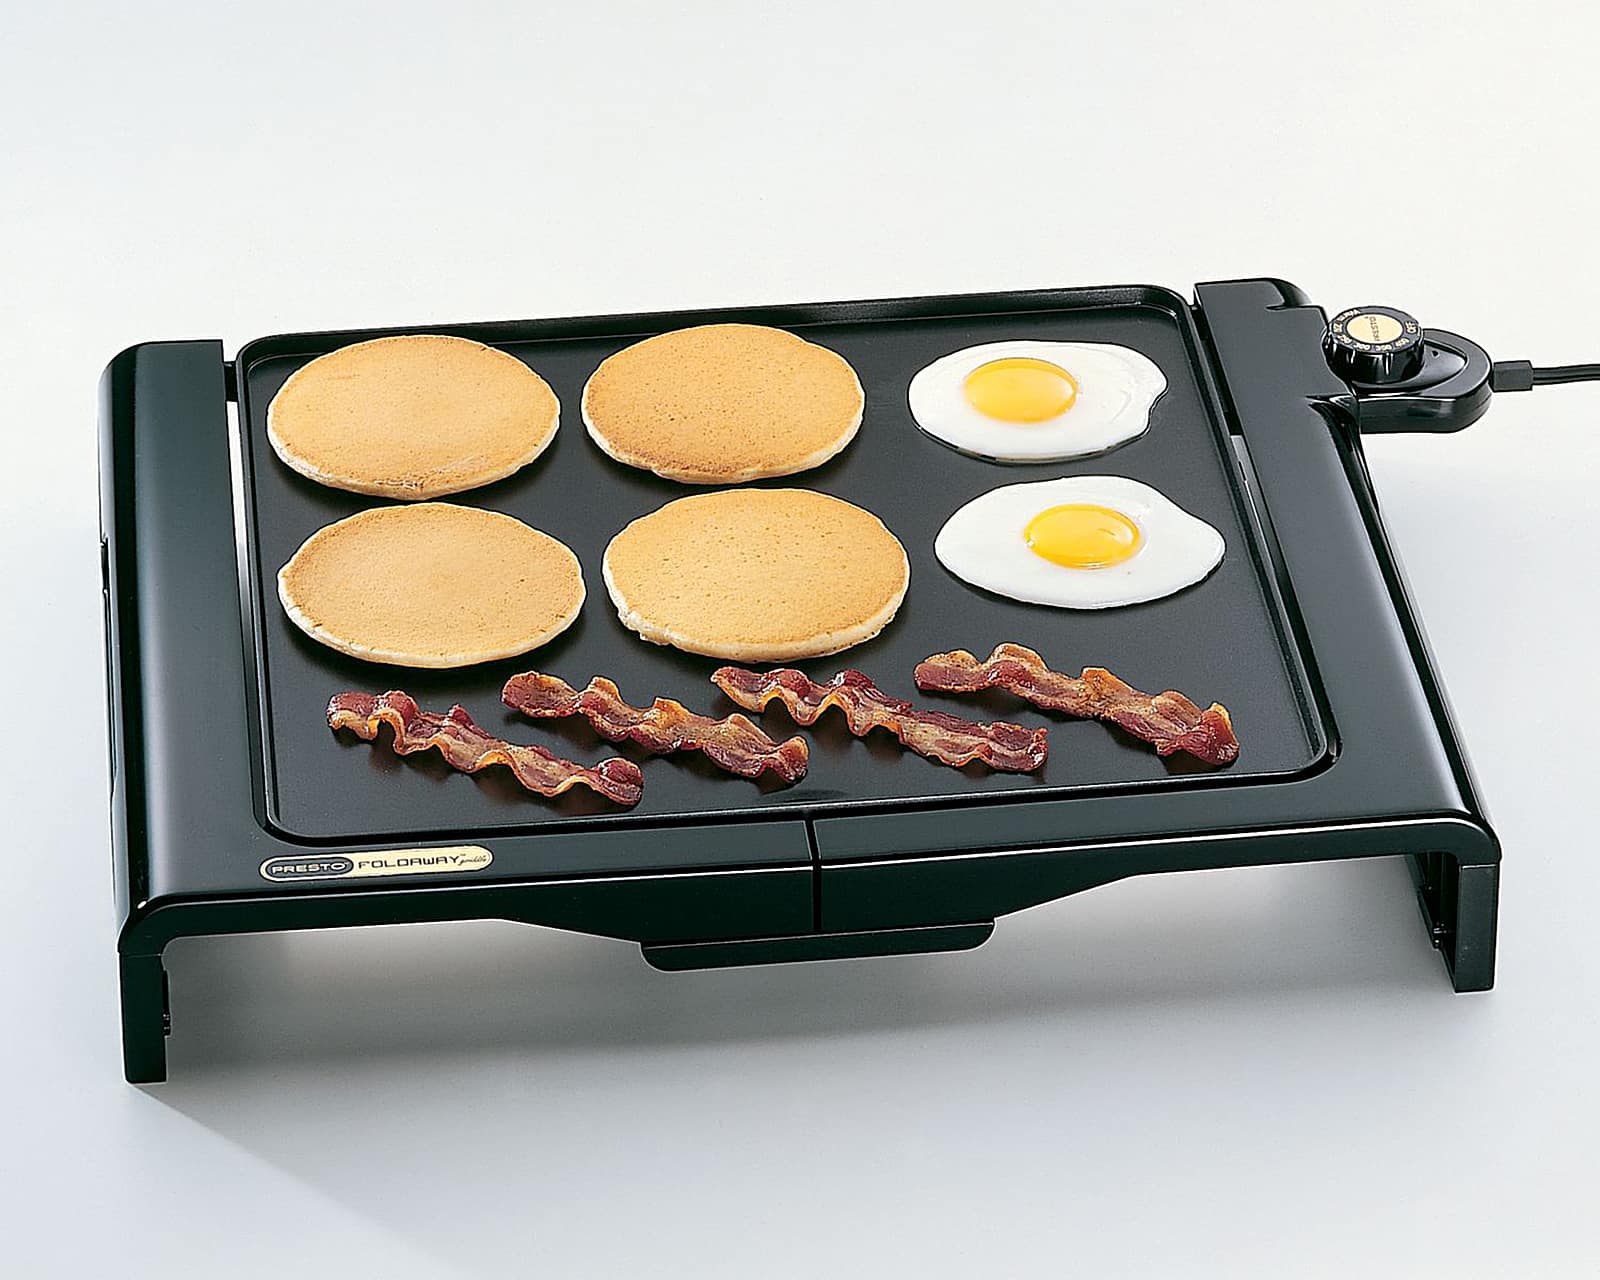 Presto Cool Touch Electric Foldaway Griddle $20 with in-store pick up at Walmart